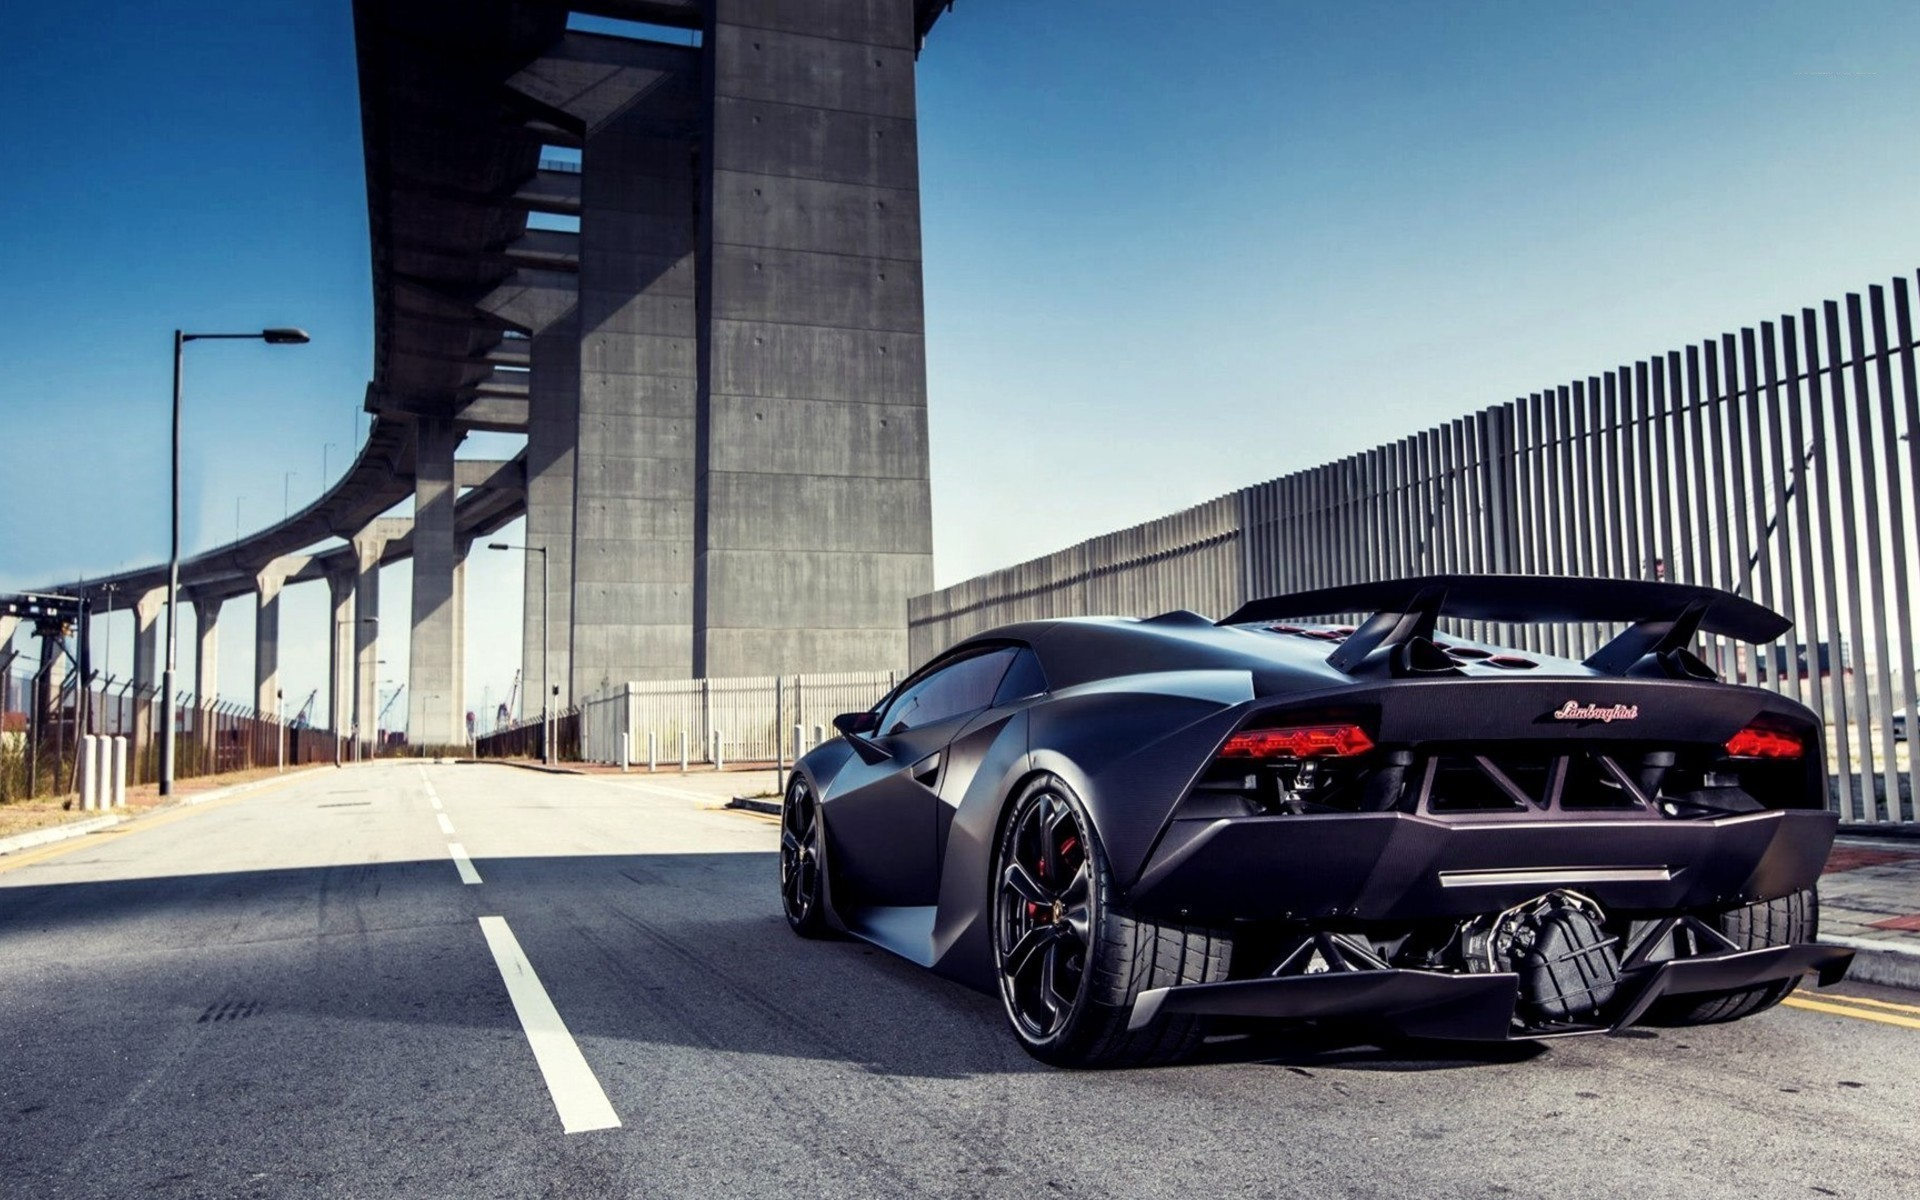 Blue Car Car Lamborghini Lamborghini Sesto Elemento Sport Car Supercar Vehicle 1920x1200